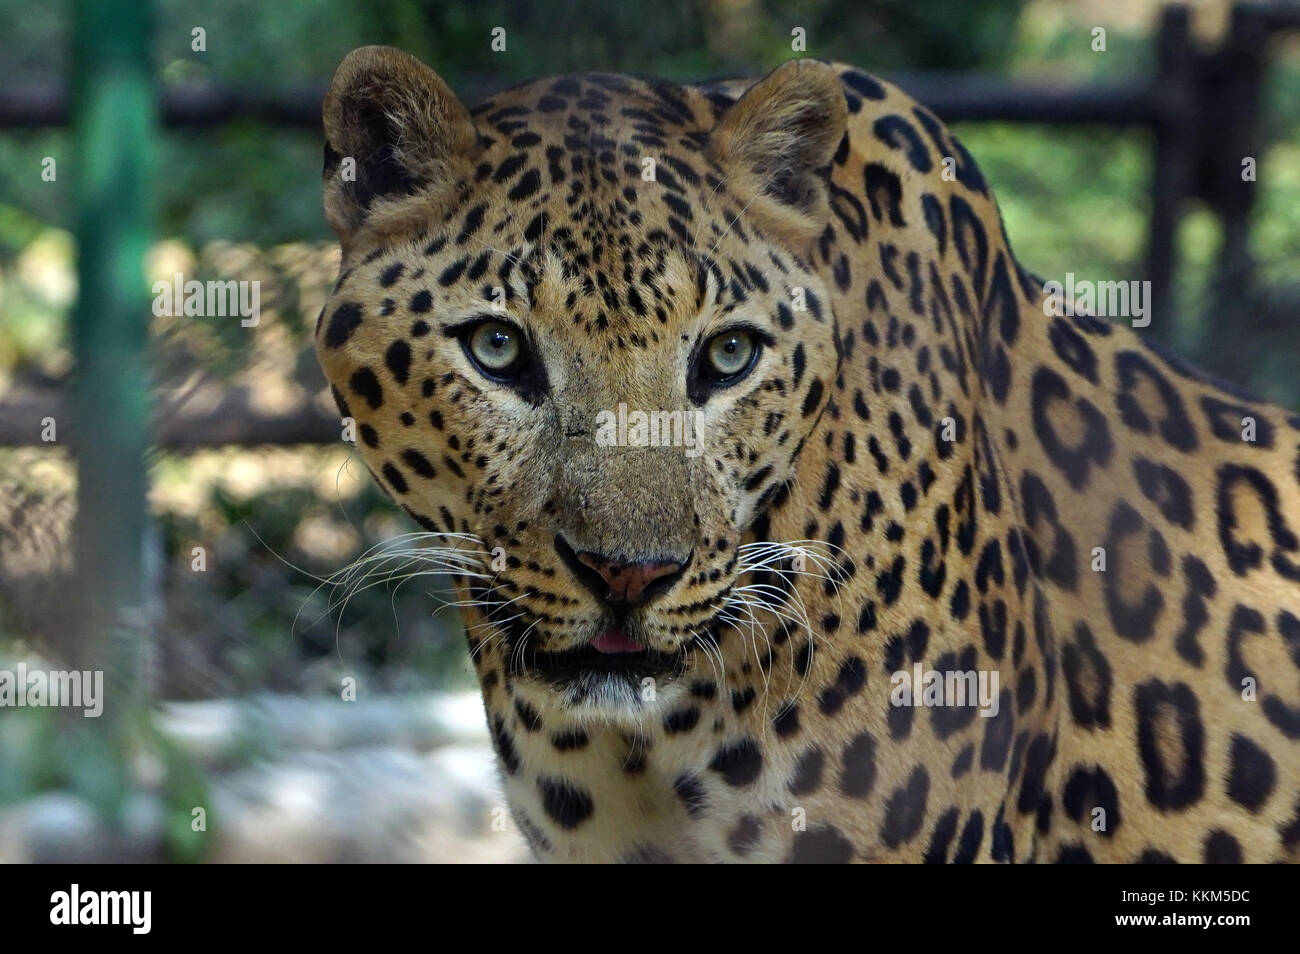 A jaguar staring at camera while it was inside the cage. - Stock Image